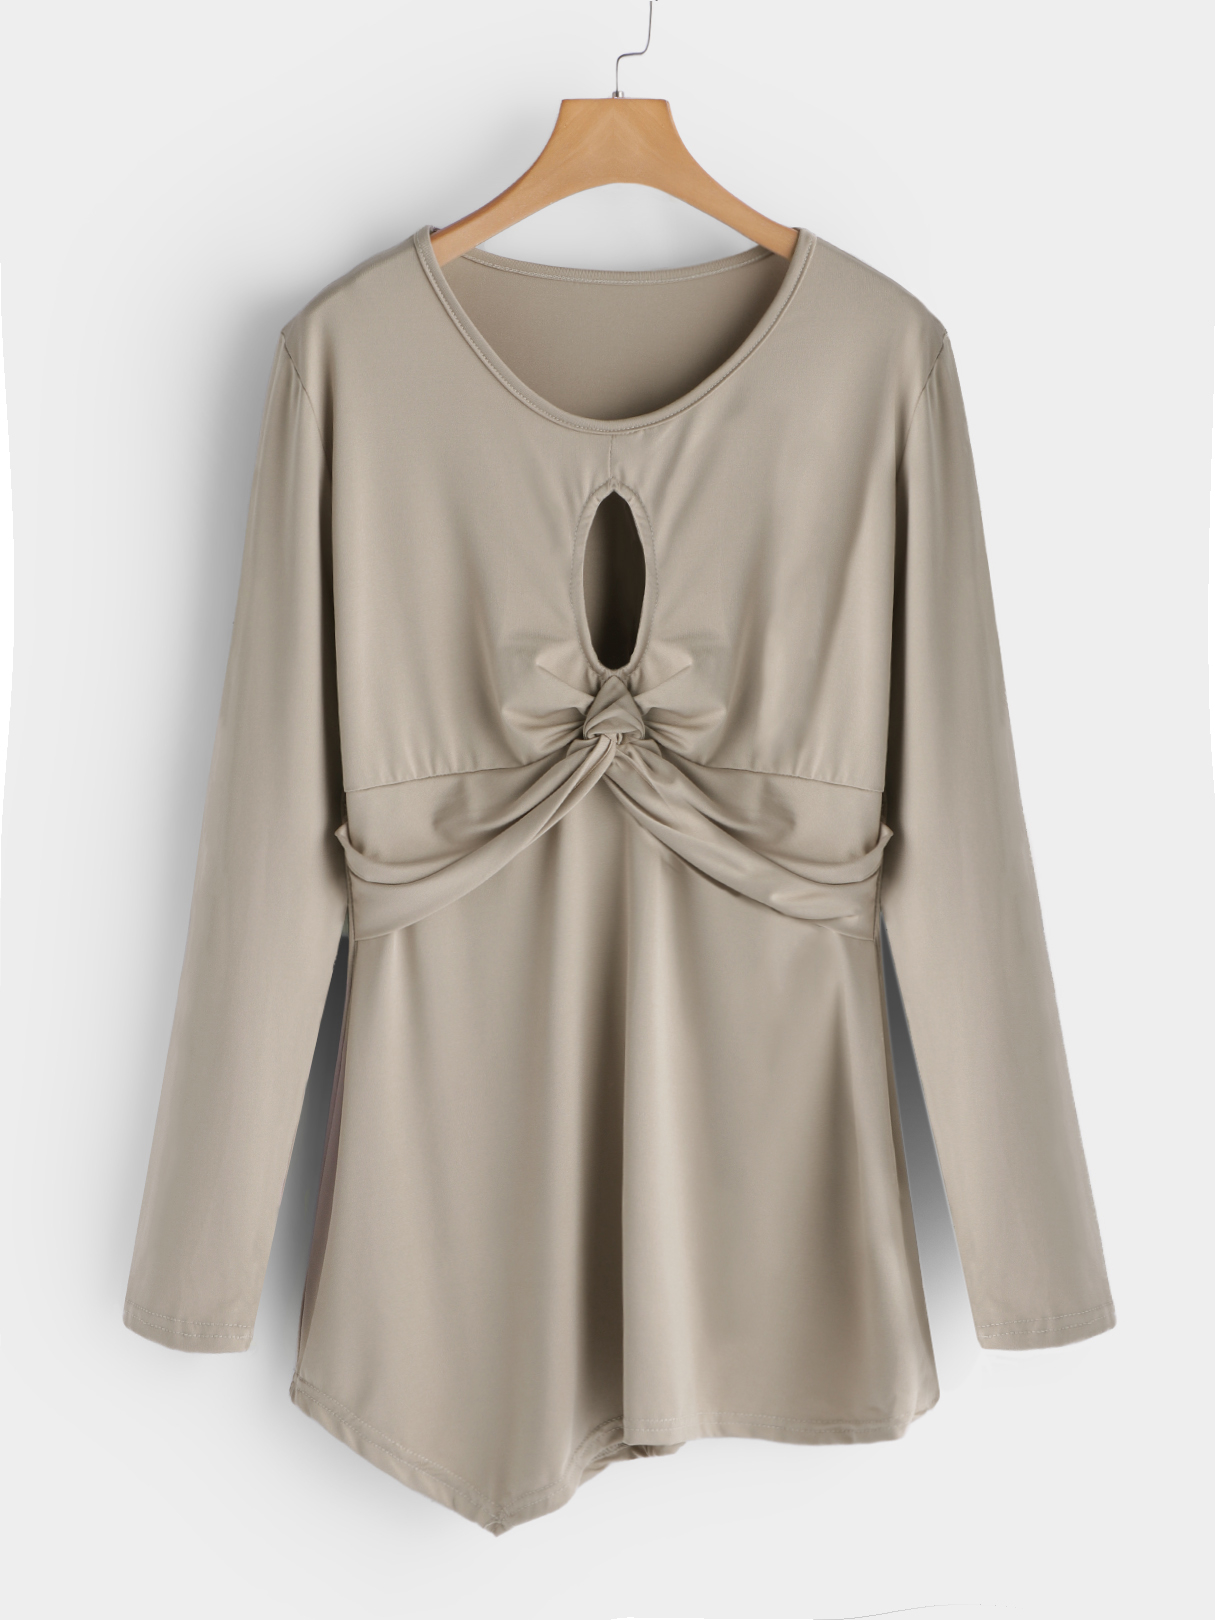 Khaki Cut Out Round Neck Long Sleeves T-shirts цены